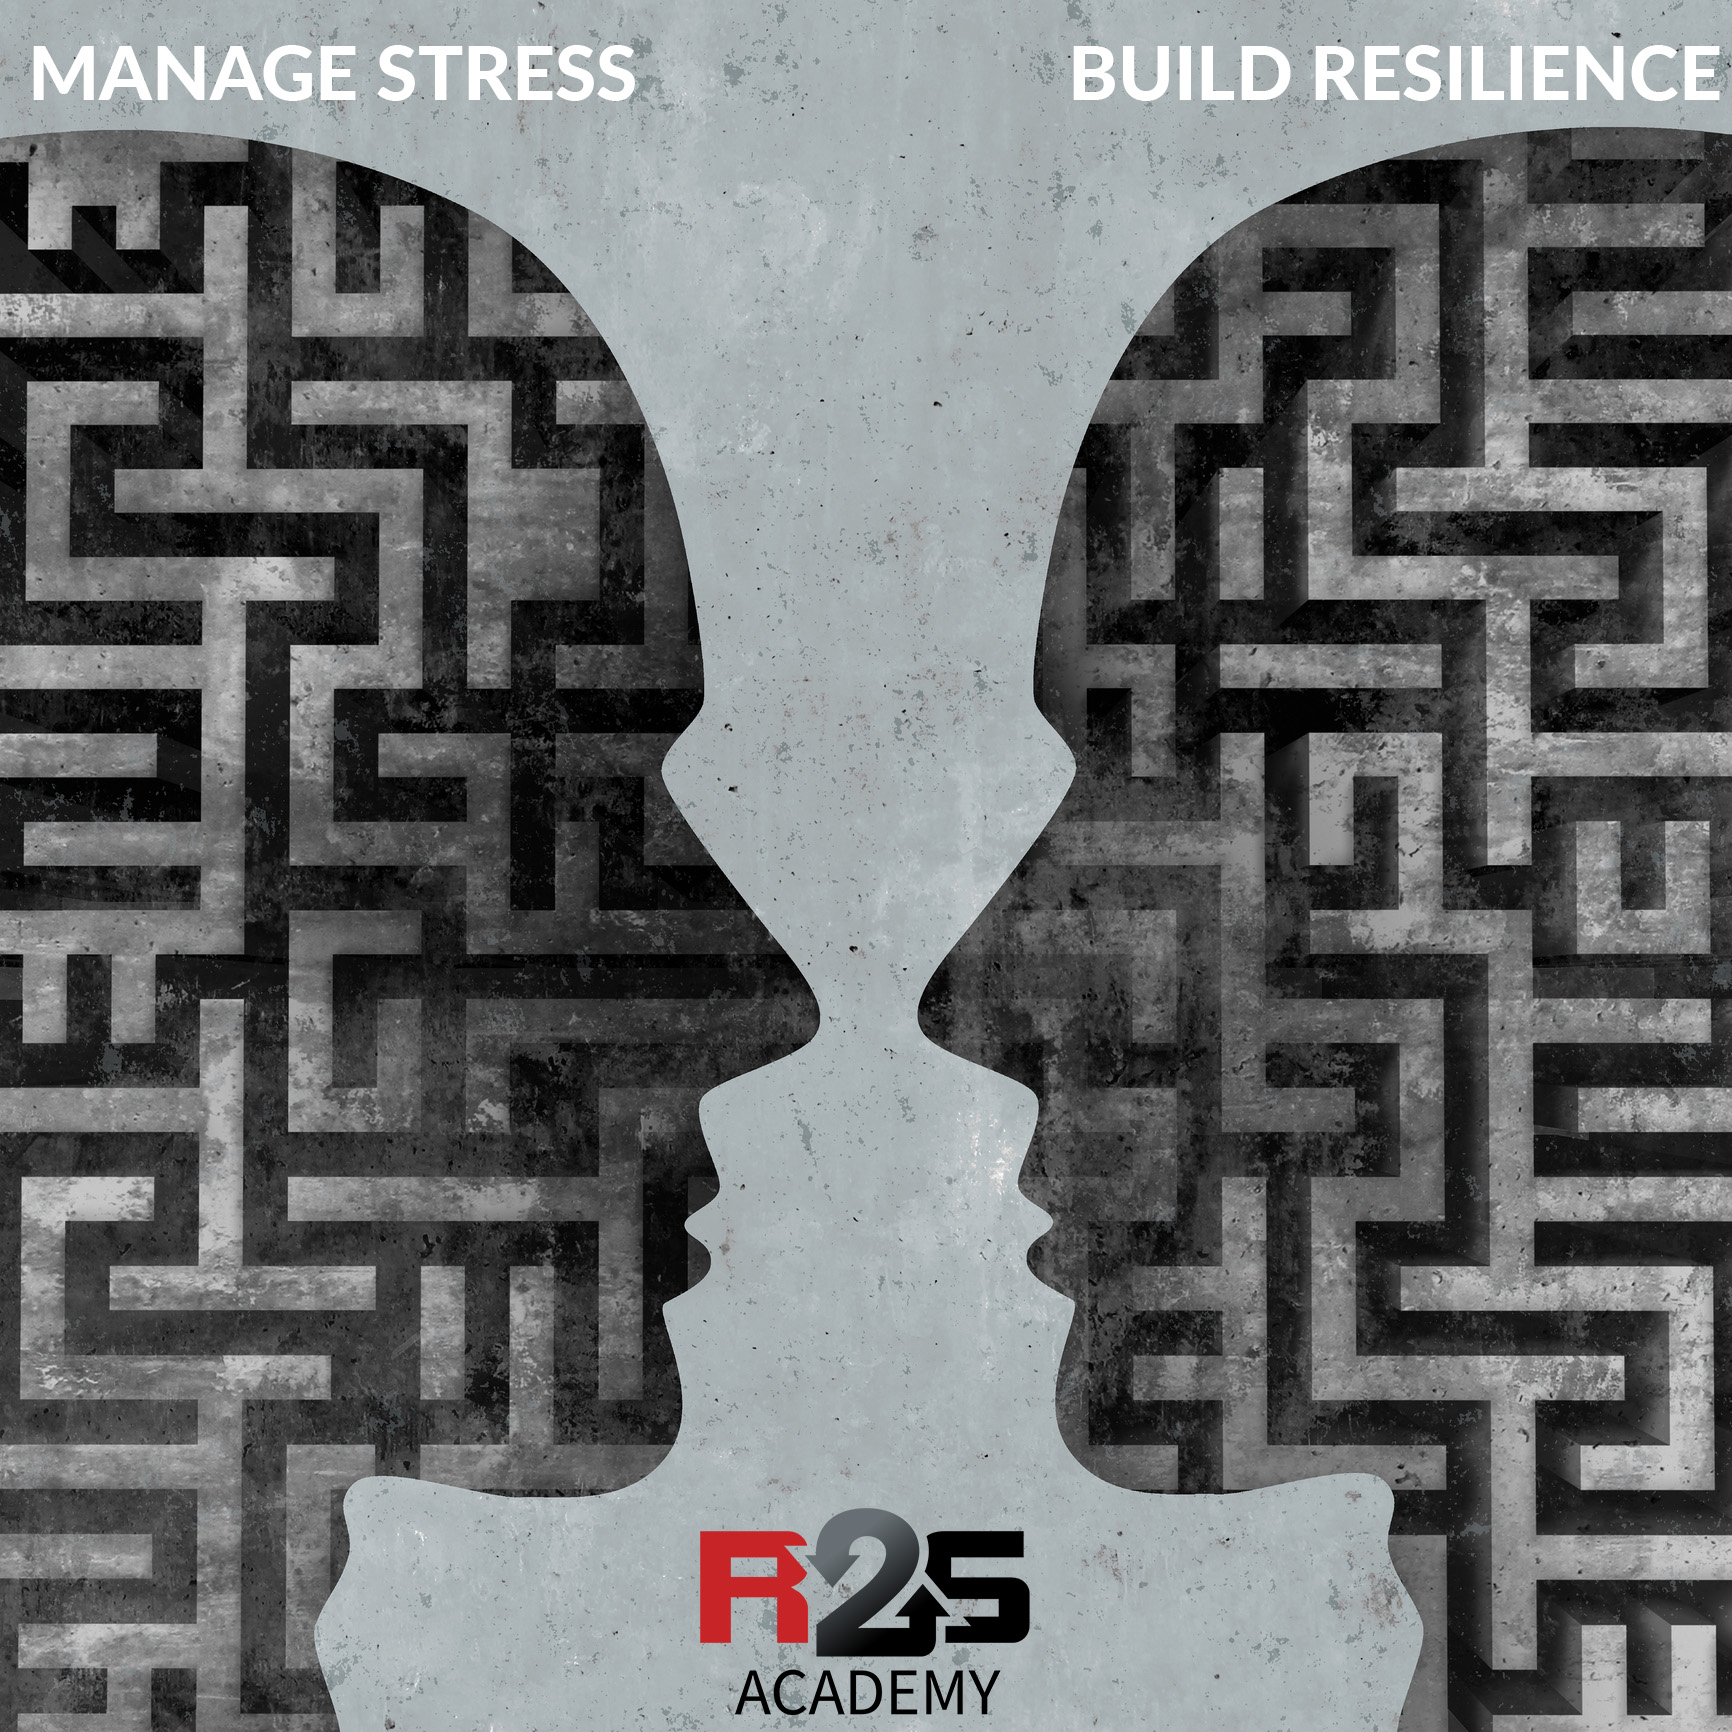 Managing Stress and Building Resilience